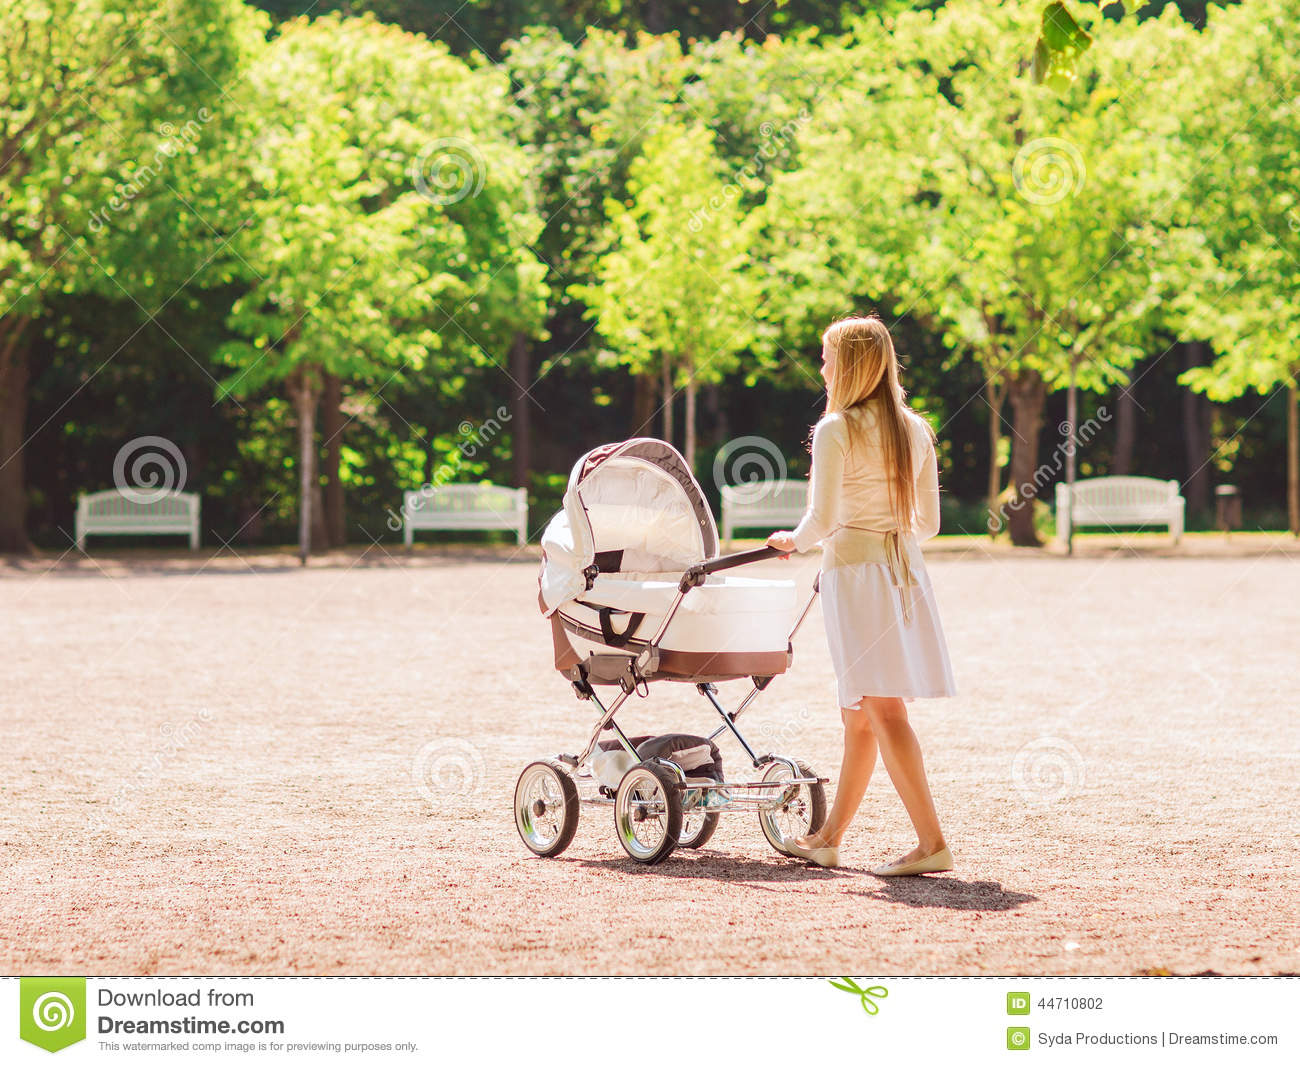 Childcare Pram Happy Mother With Stroller In Park Royalty Free Stock